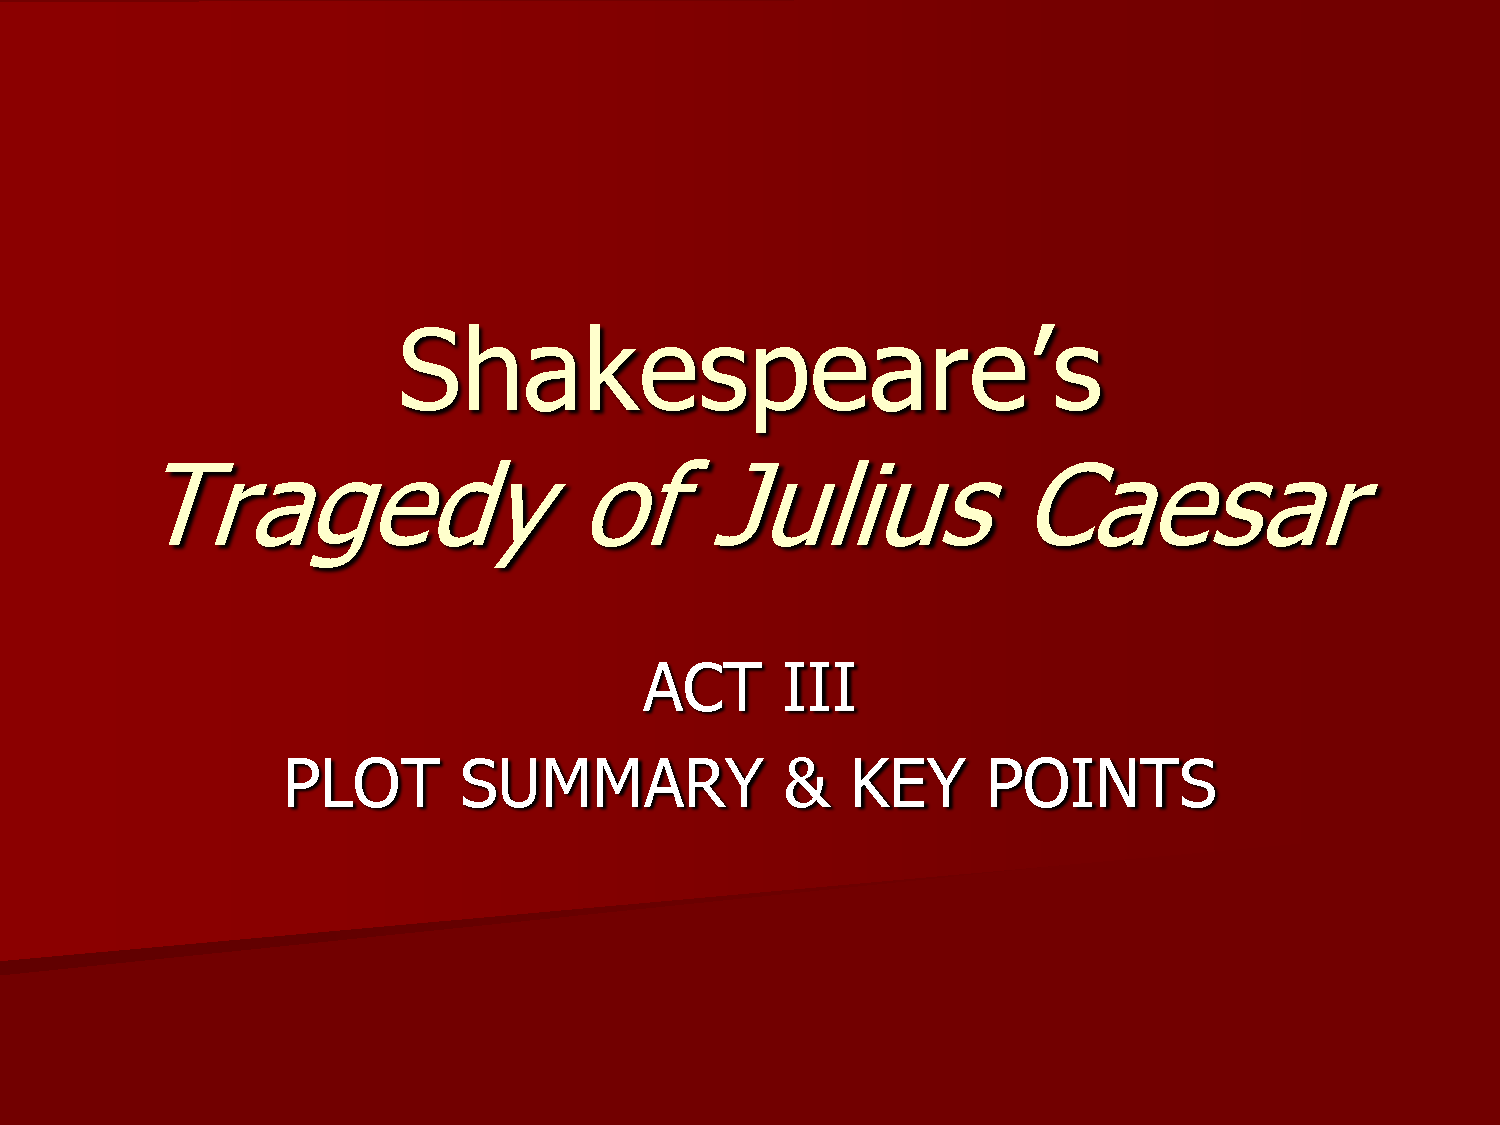 an analysis of the tragedy of julius caesar This resource is an introduction to william shakespeare's tragic play, the tragedy of julius caesar, through the study of universal themes using multiple-perspective investigations of betrayal scenarios.